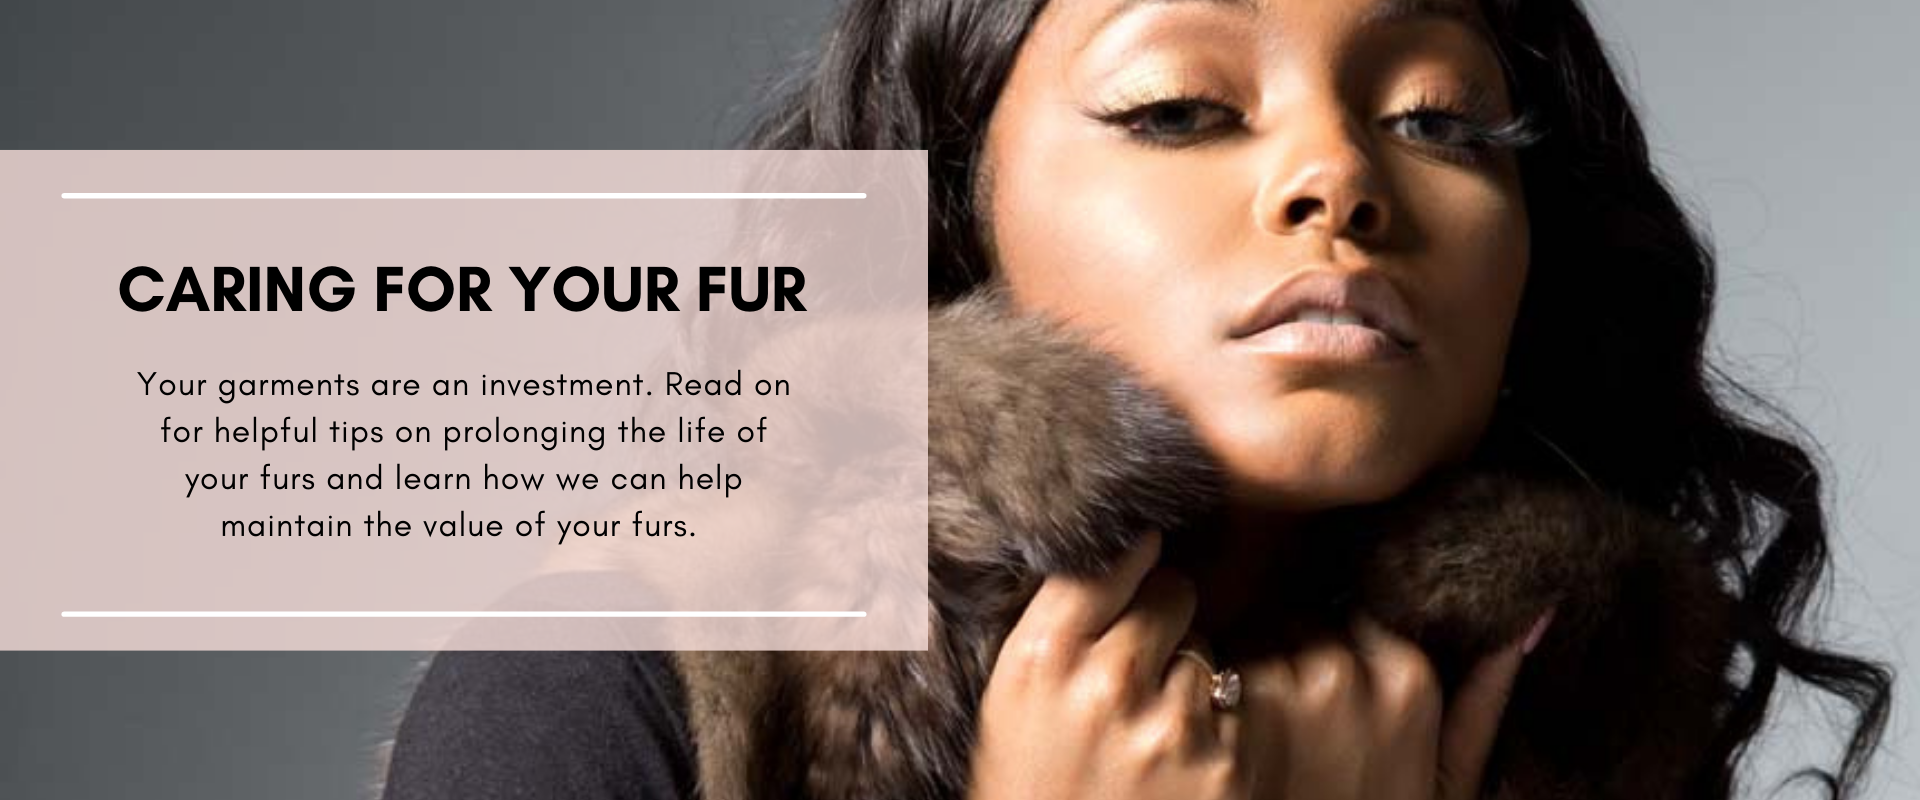 Caring for your fur - Protect your investment